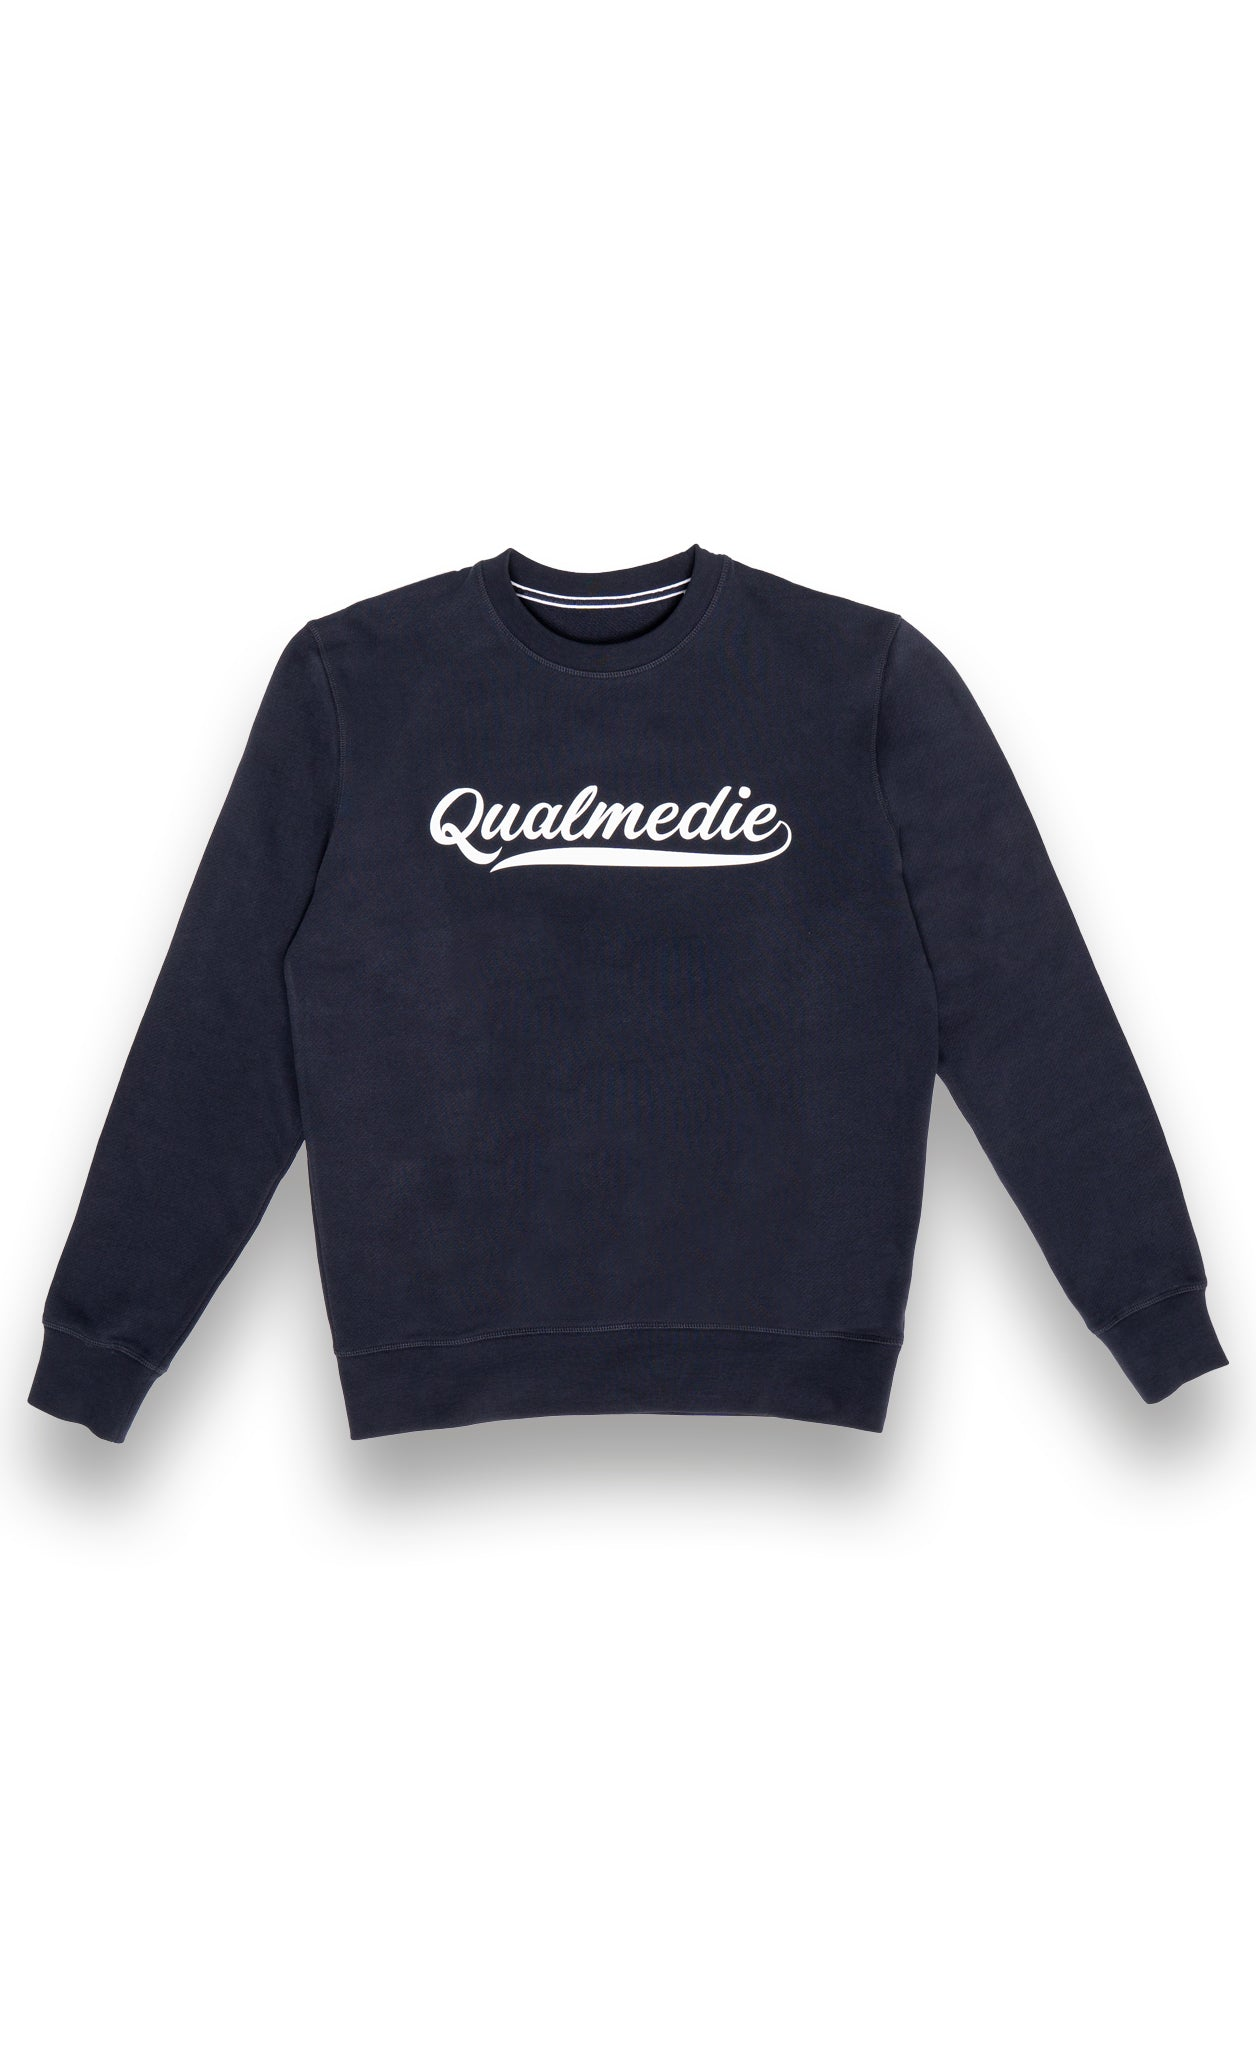 Qualmedie Sweater College dunkelblau